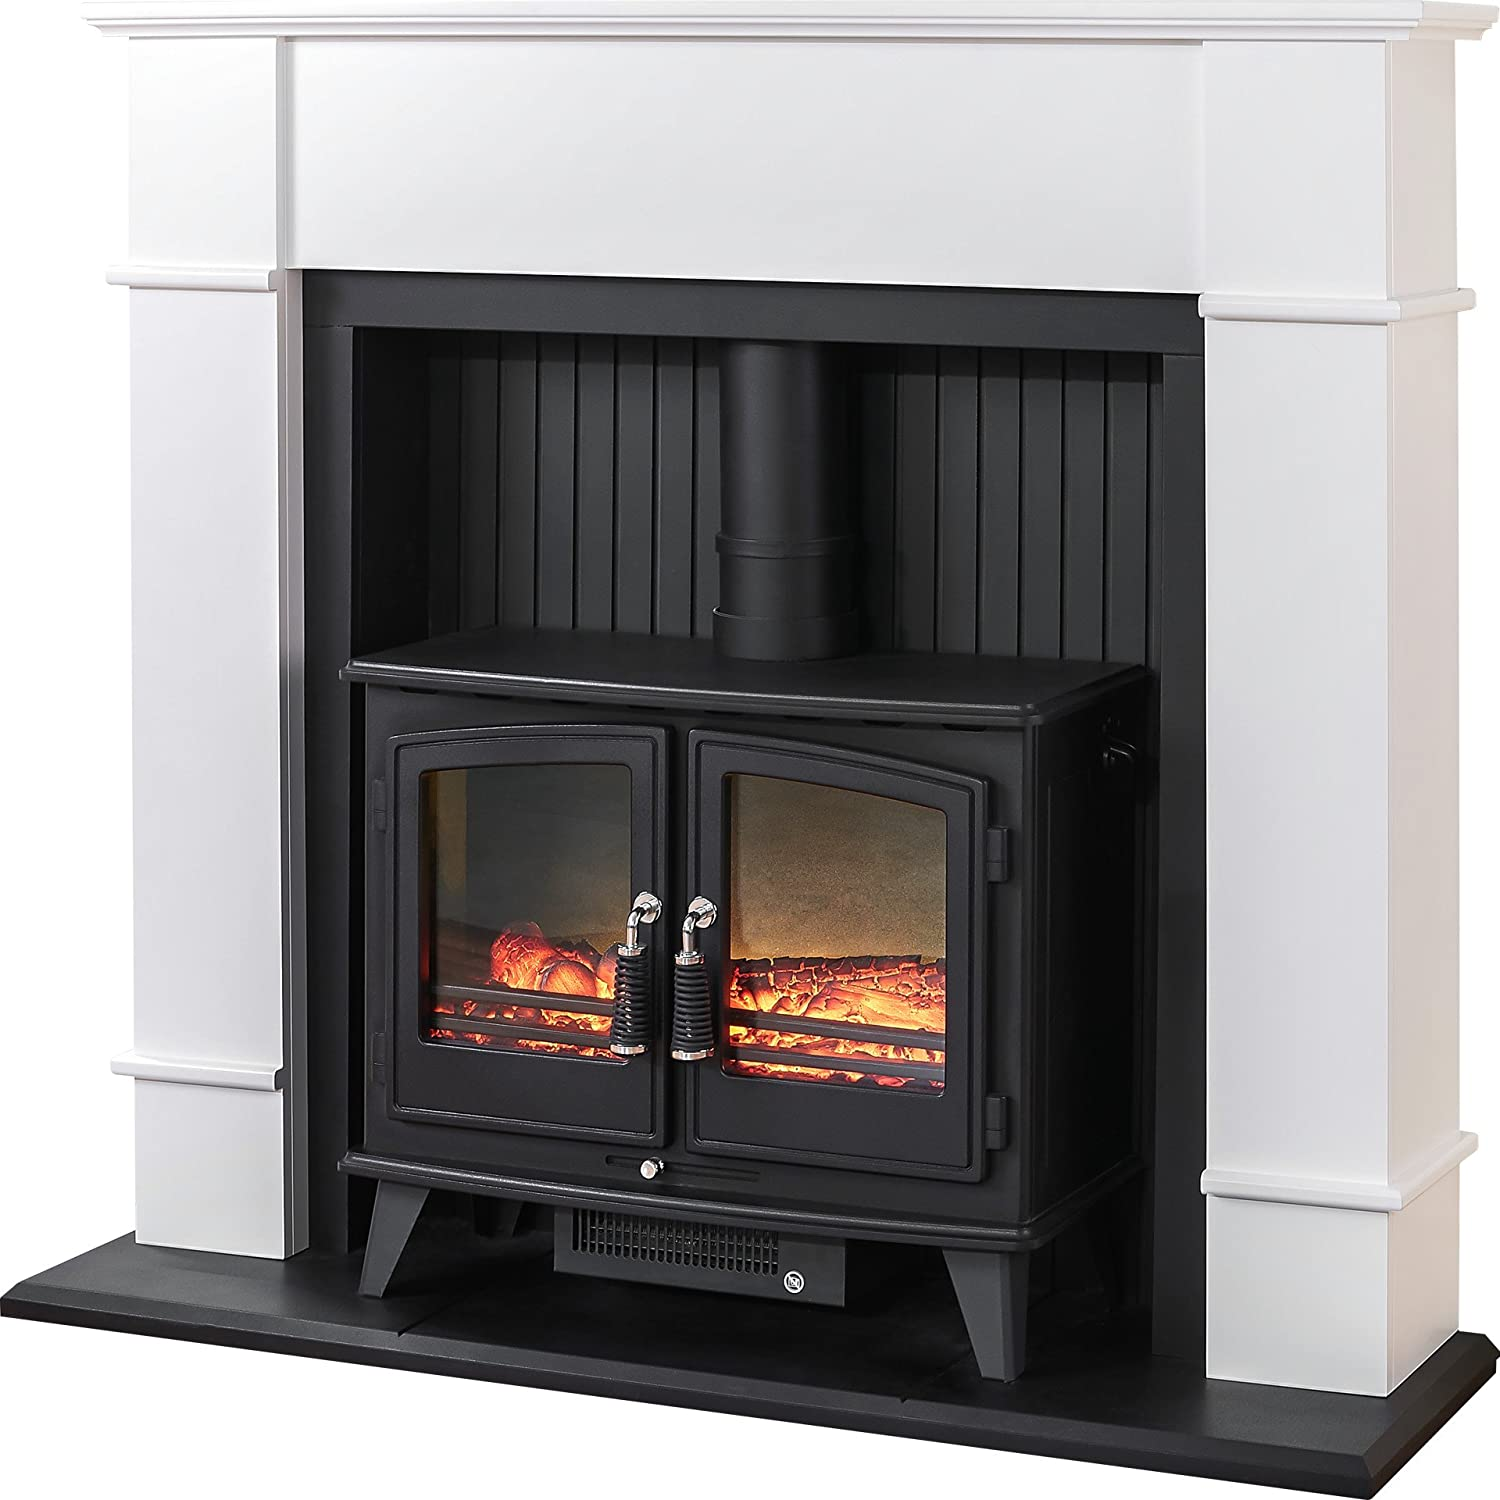 adam oxford stove suite with woodhouse electric stove pure white